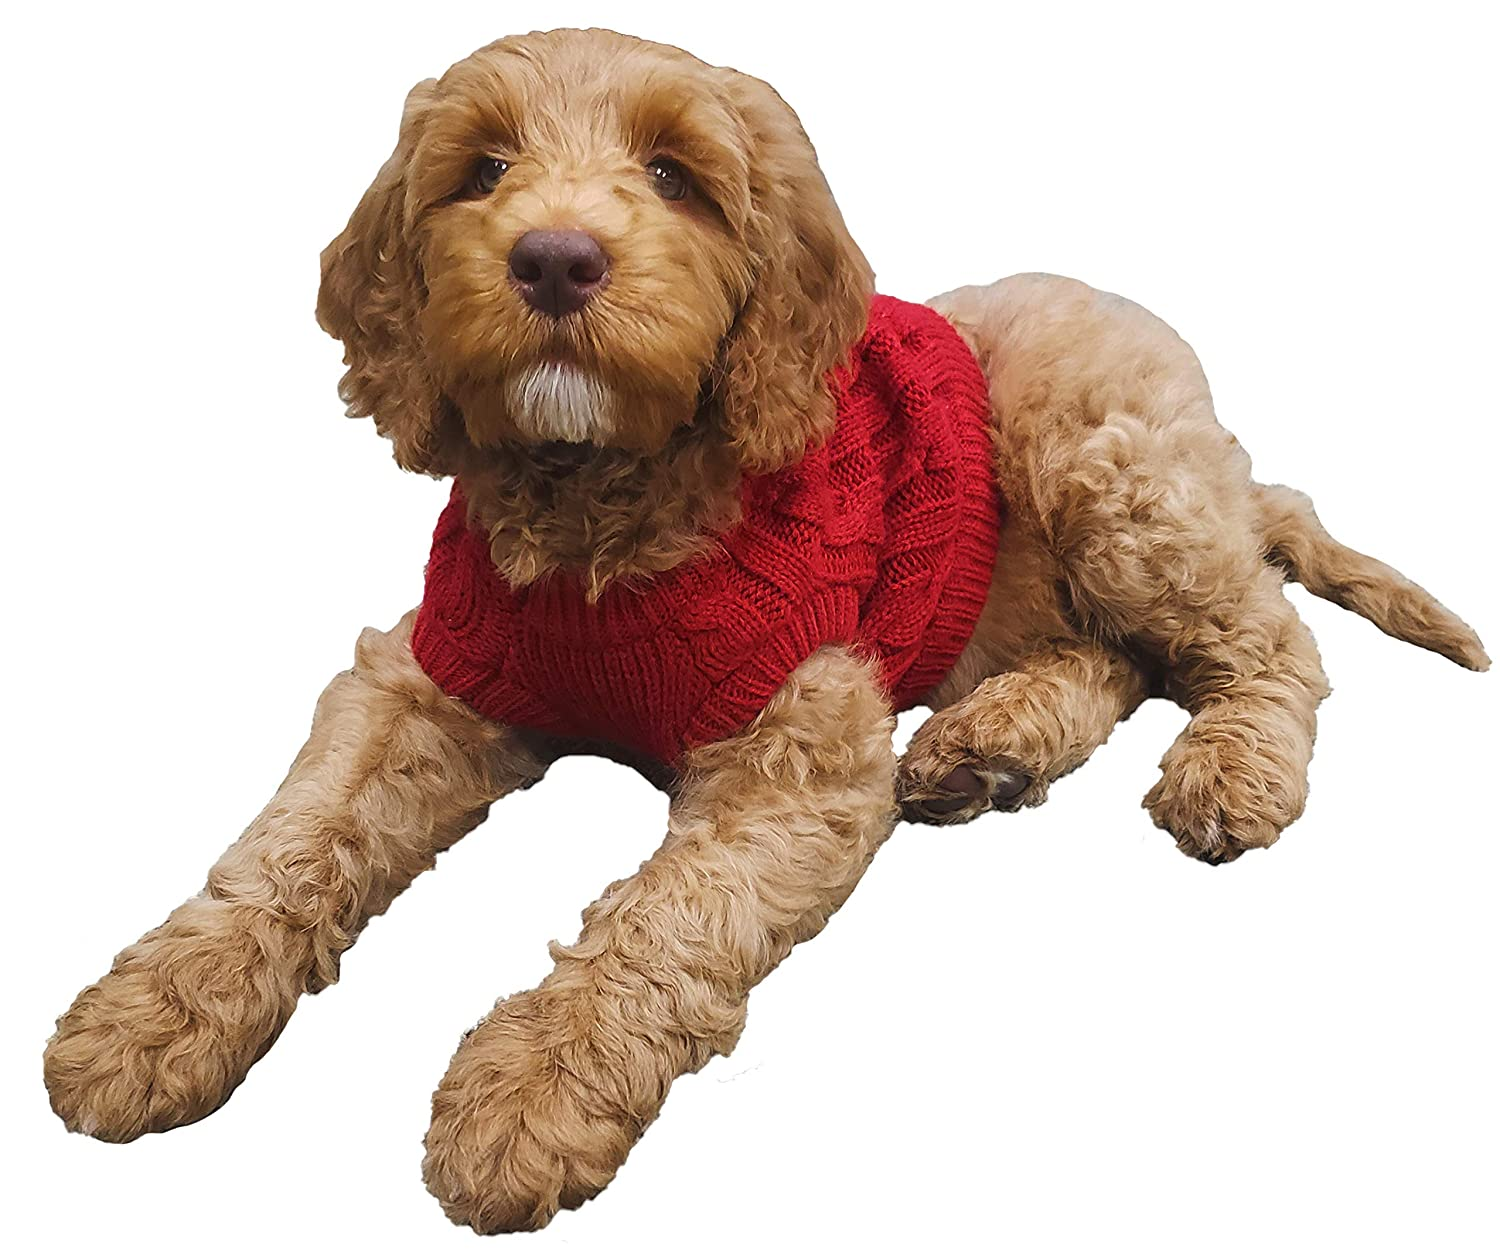 ced0e25fd Amazon.com   Funky Junque DOG-100-42-M C.C Pet Sweater - Red (M)   Pet  Supplies